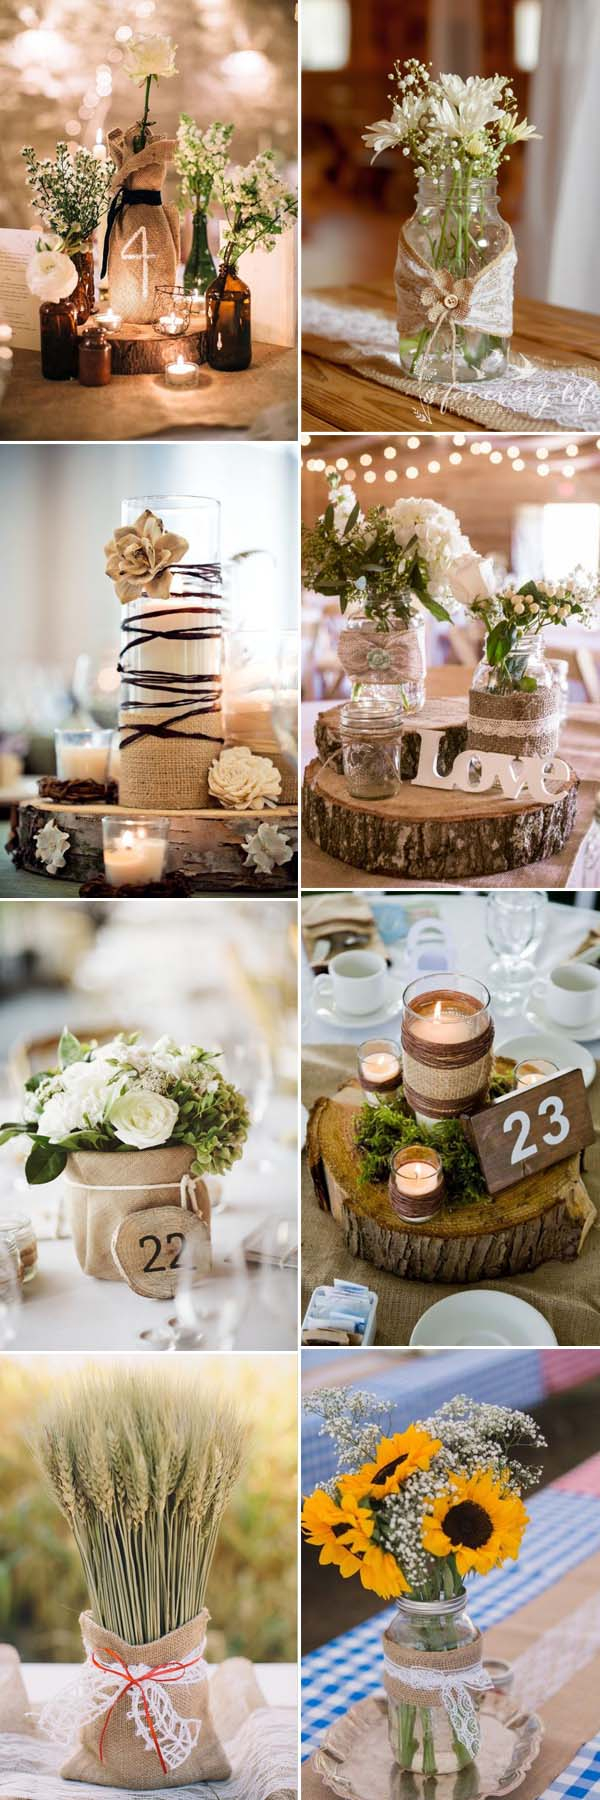 Rustic Wedding Decor Diy The Most Complete Burlap Rustic Wedding Ideas For Your Inspiration